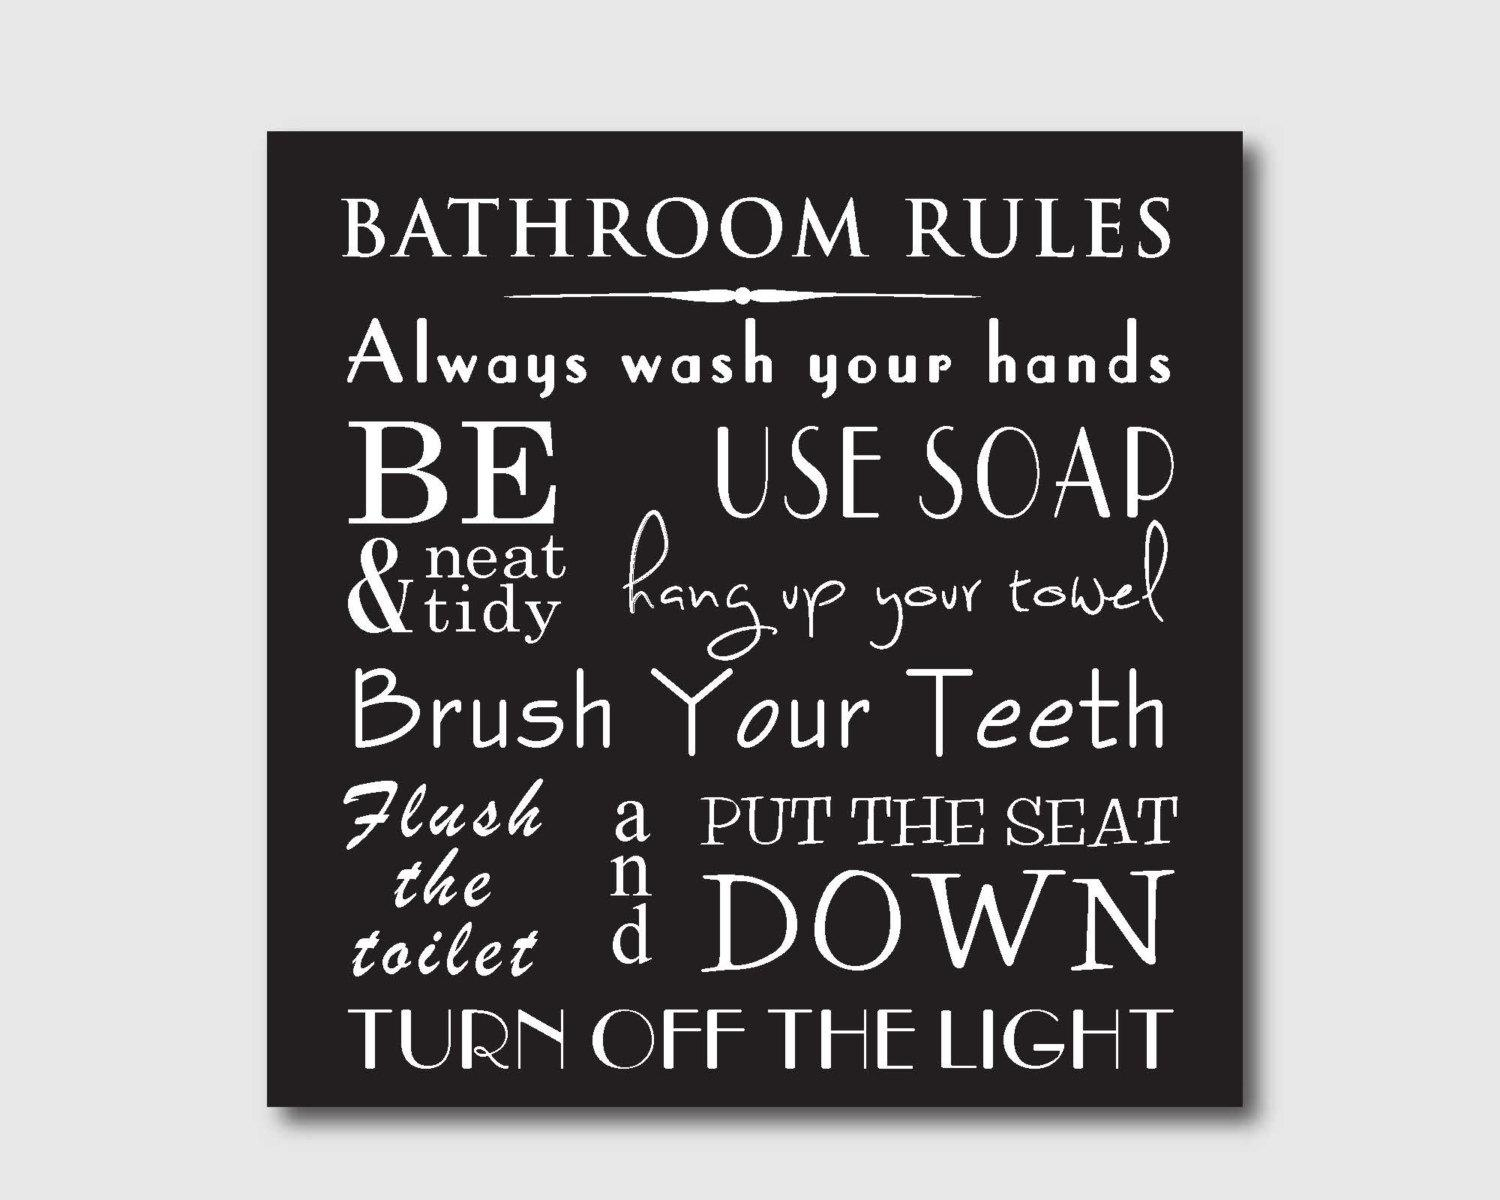 Art Prints For Bathroom (Image 1 of 20)